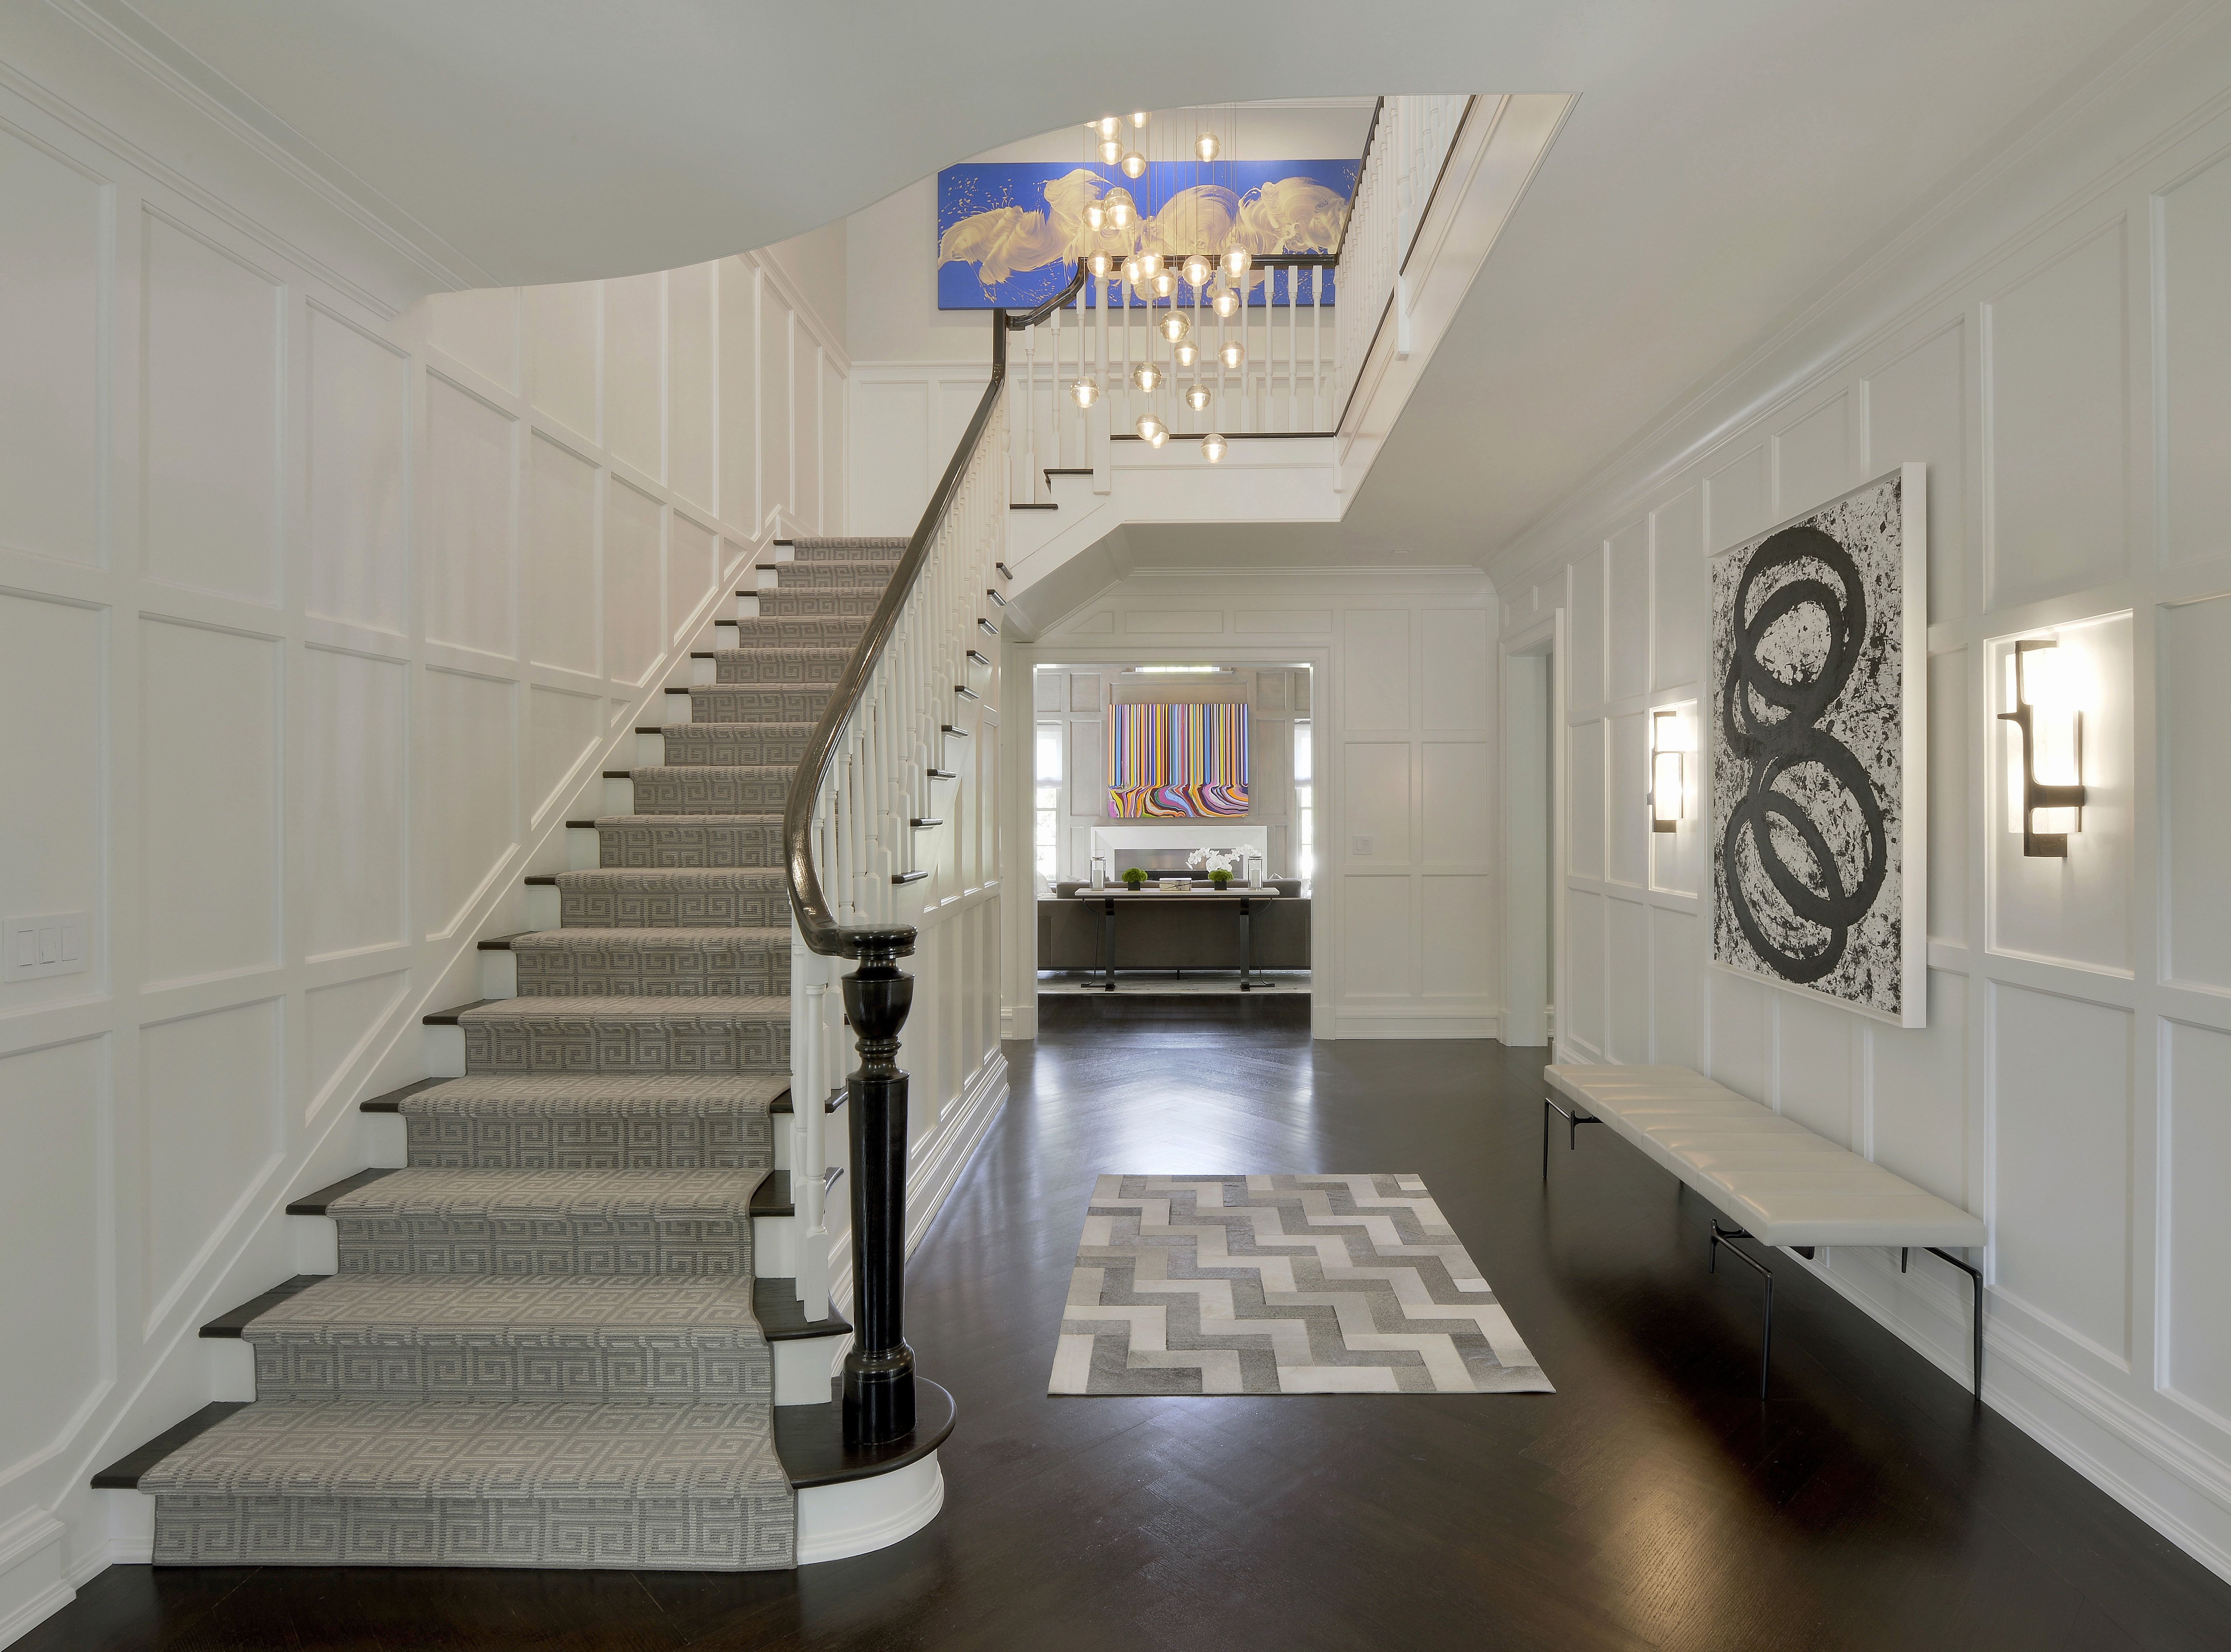 Best Stair Hall With Paneled Walls Staircase Design Modern Interior Staircase Stairs Architecture 400 x 300